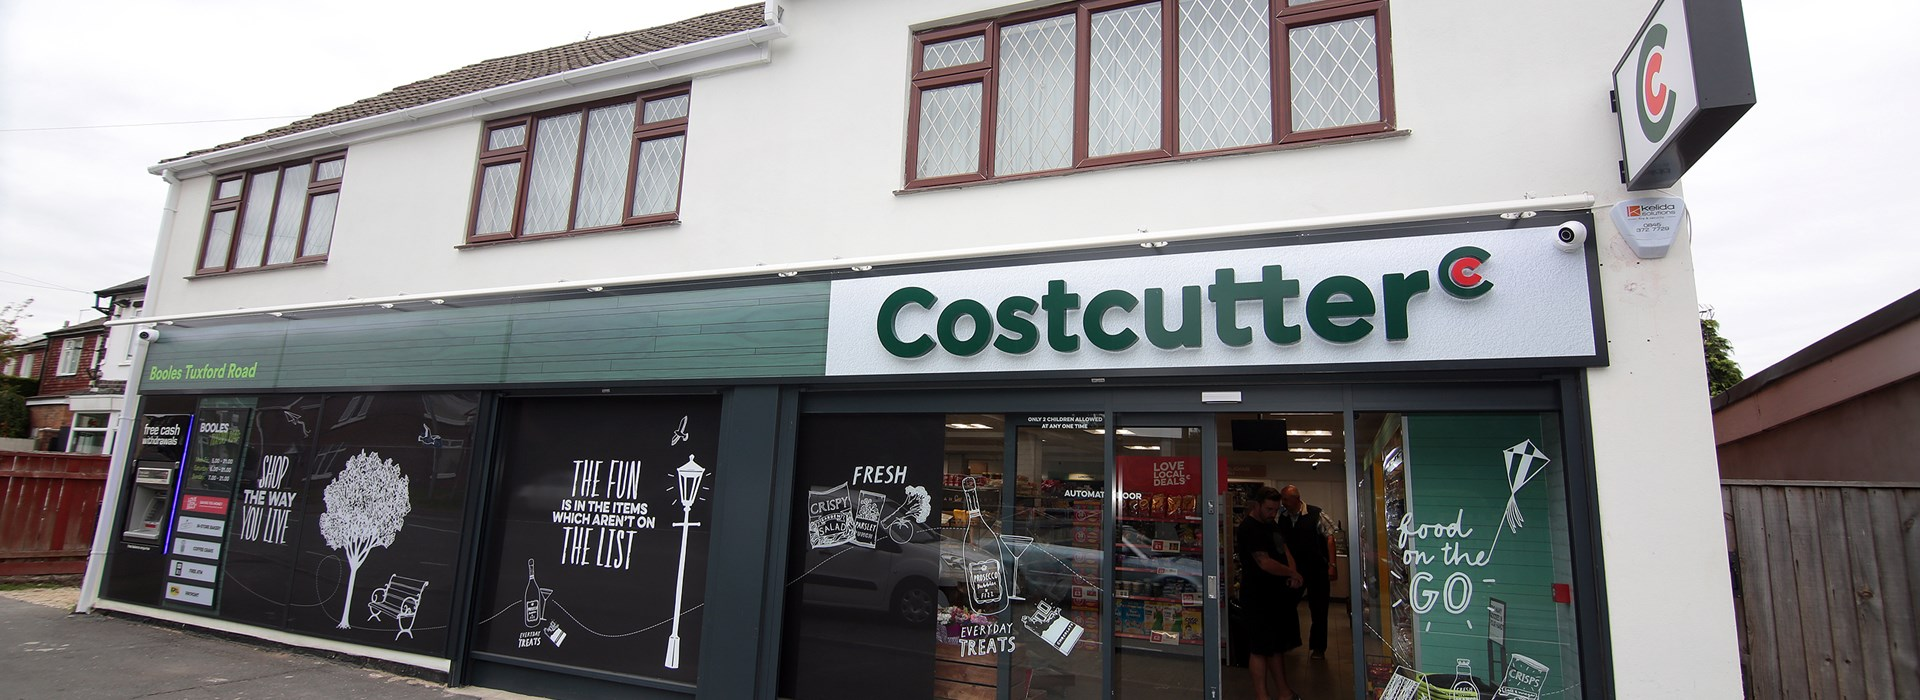 Bestway Extends Co-op Supply Deal For Costcutter Retailers